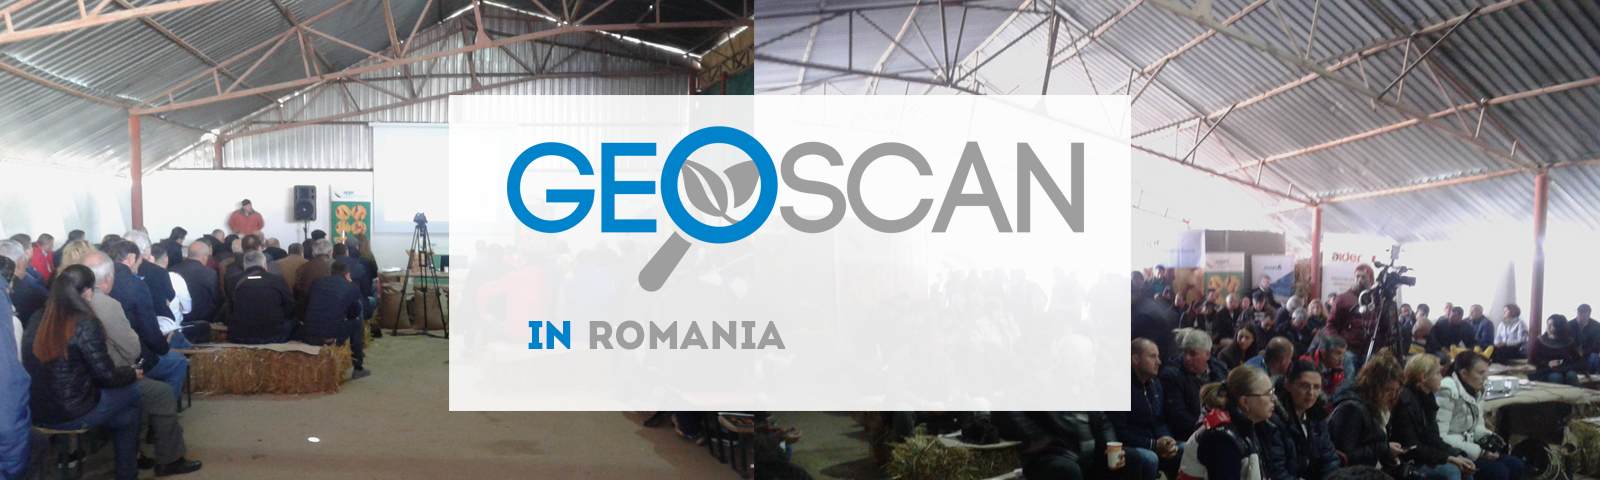 GeoSCAN will be presented during an APPR event in Romania